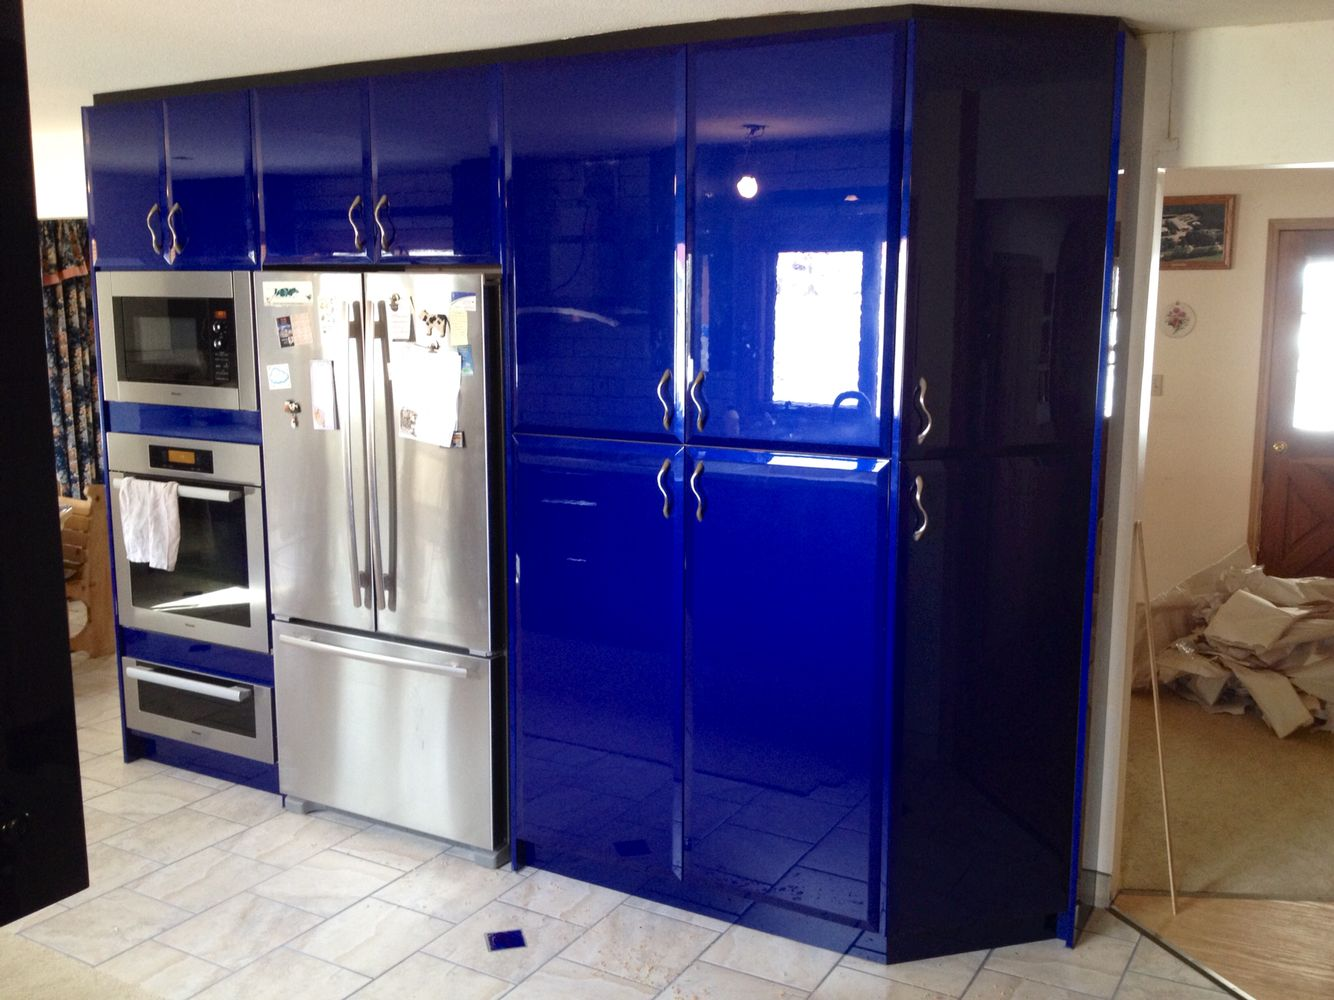 High Gloss Automotive Paint On Kitchen Cabinets Diy Kitchen Cabinets Painting Wooden Kitchen Cabinets Diy Kitchen Cabinets